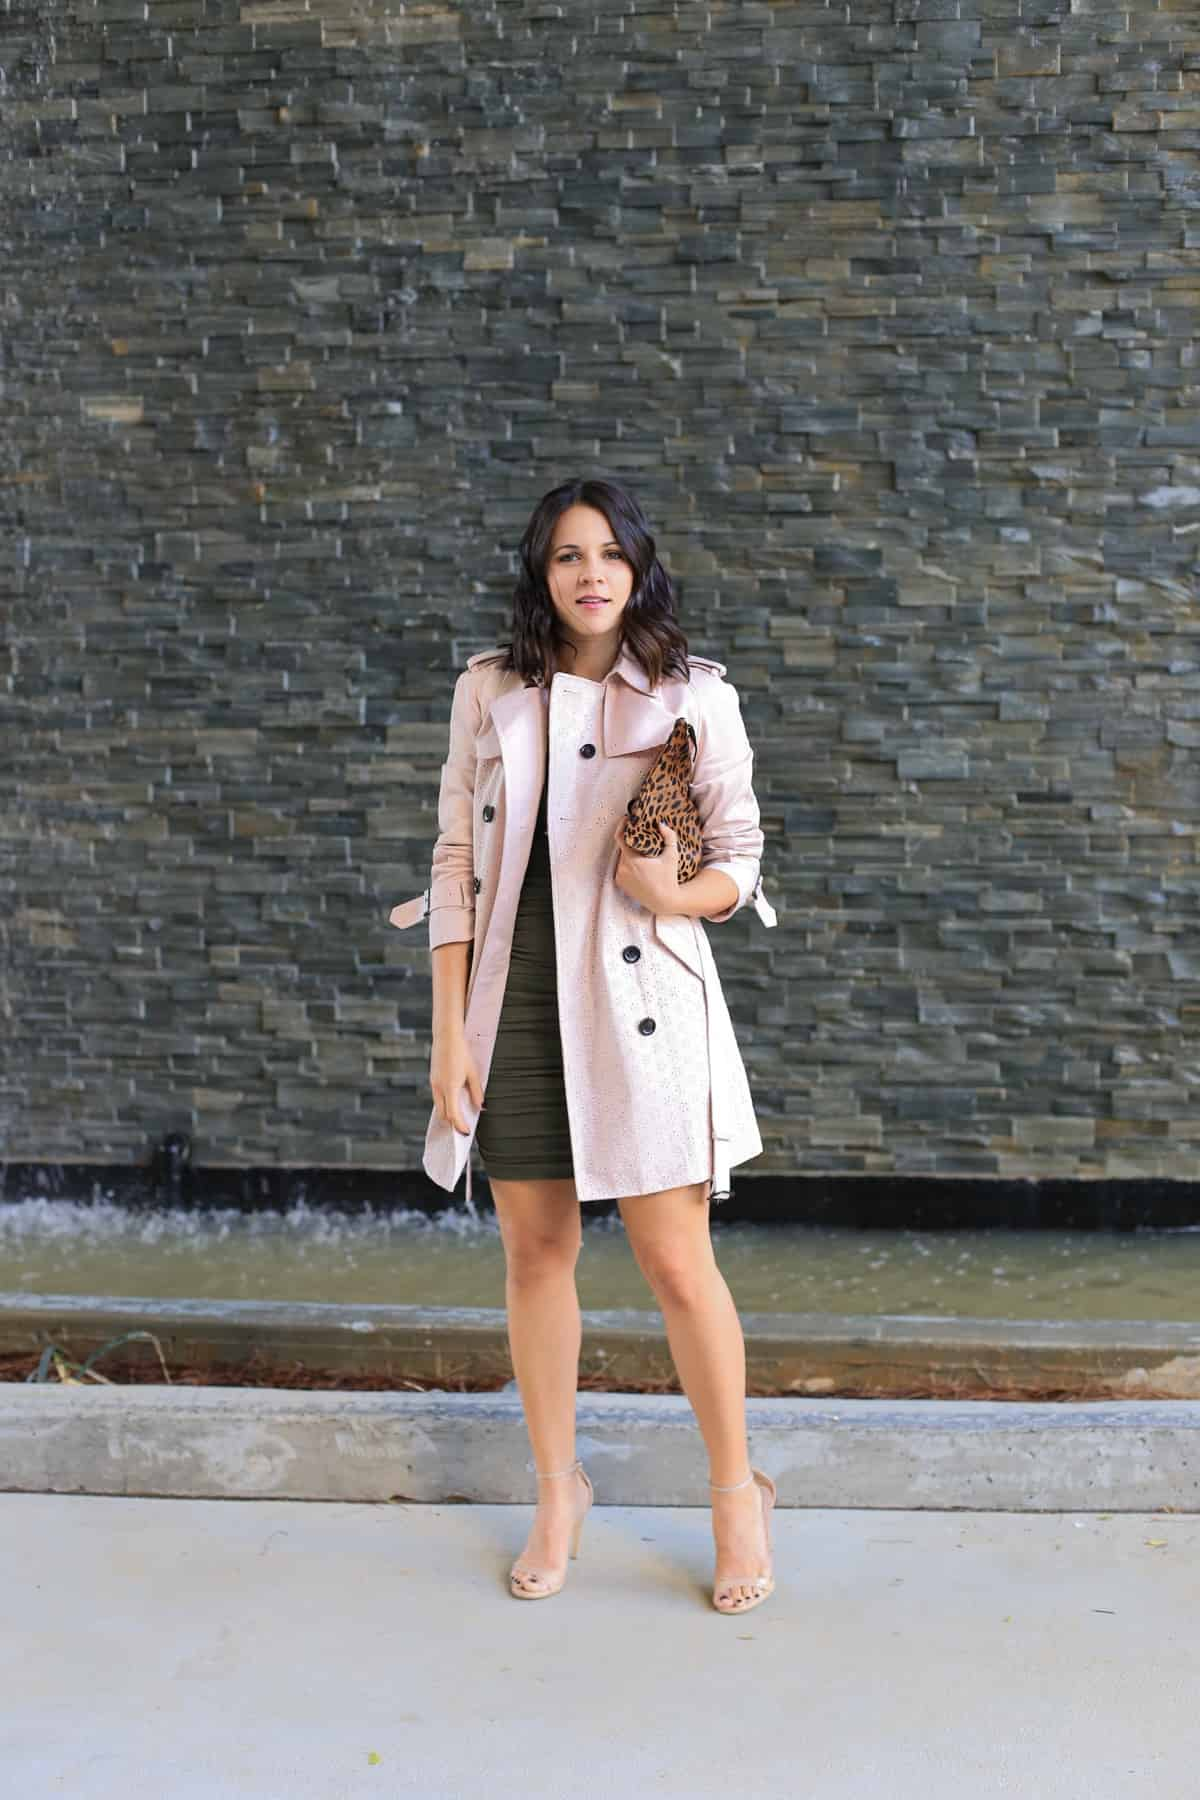 Coach eyelet trench coat, how to style a trench coat for spring - My Style Vita - @mystylevita - 2